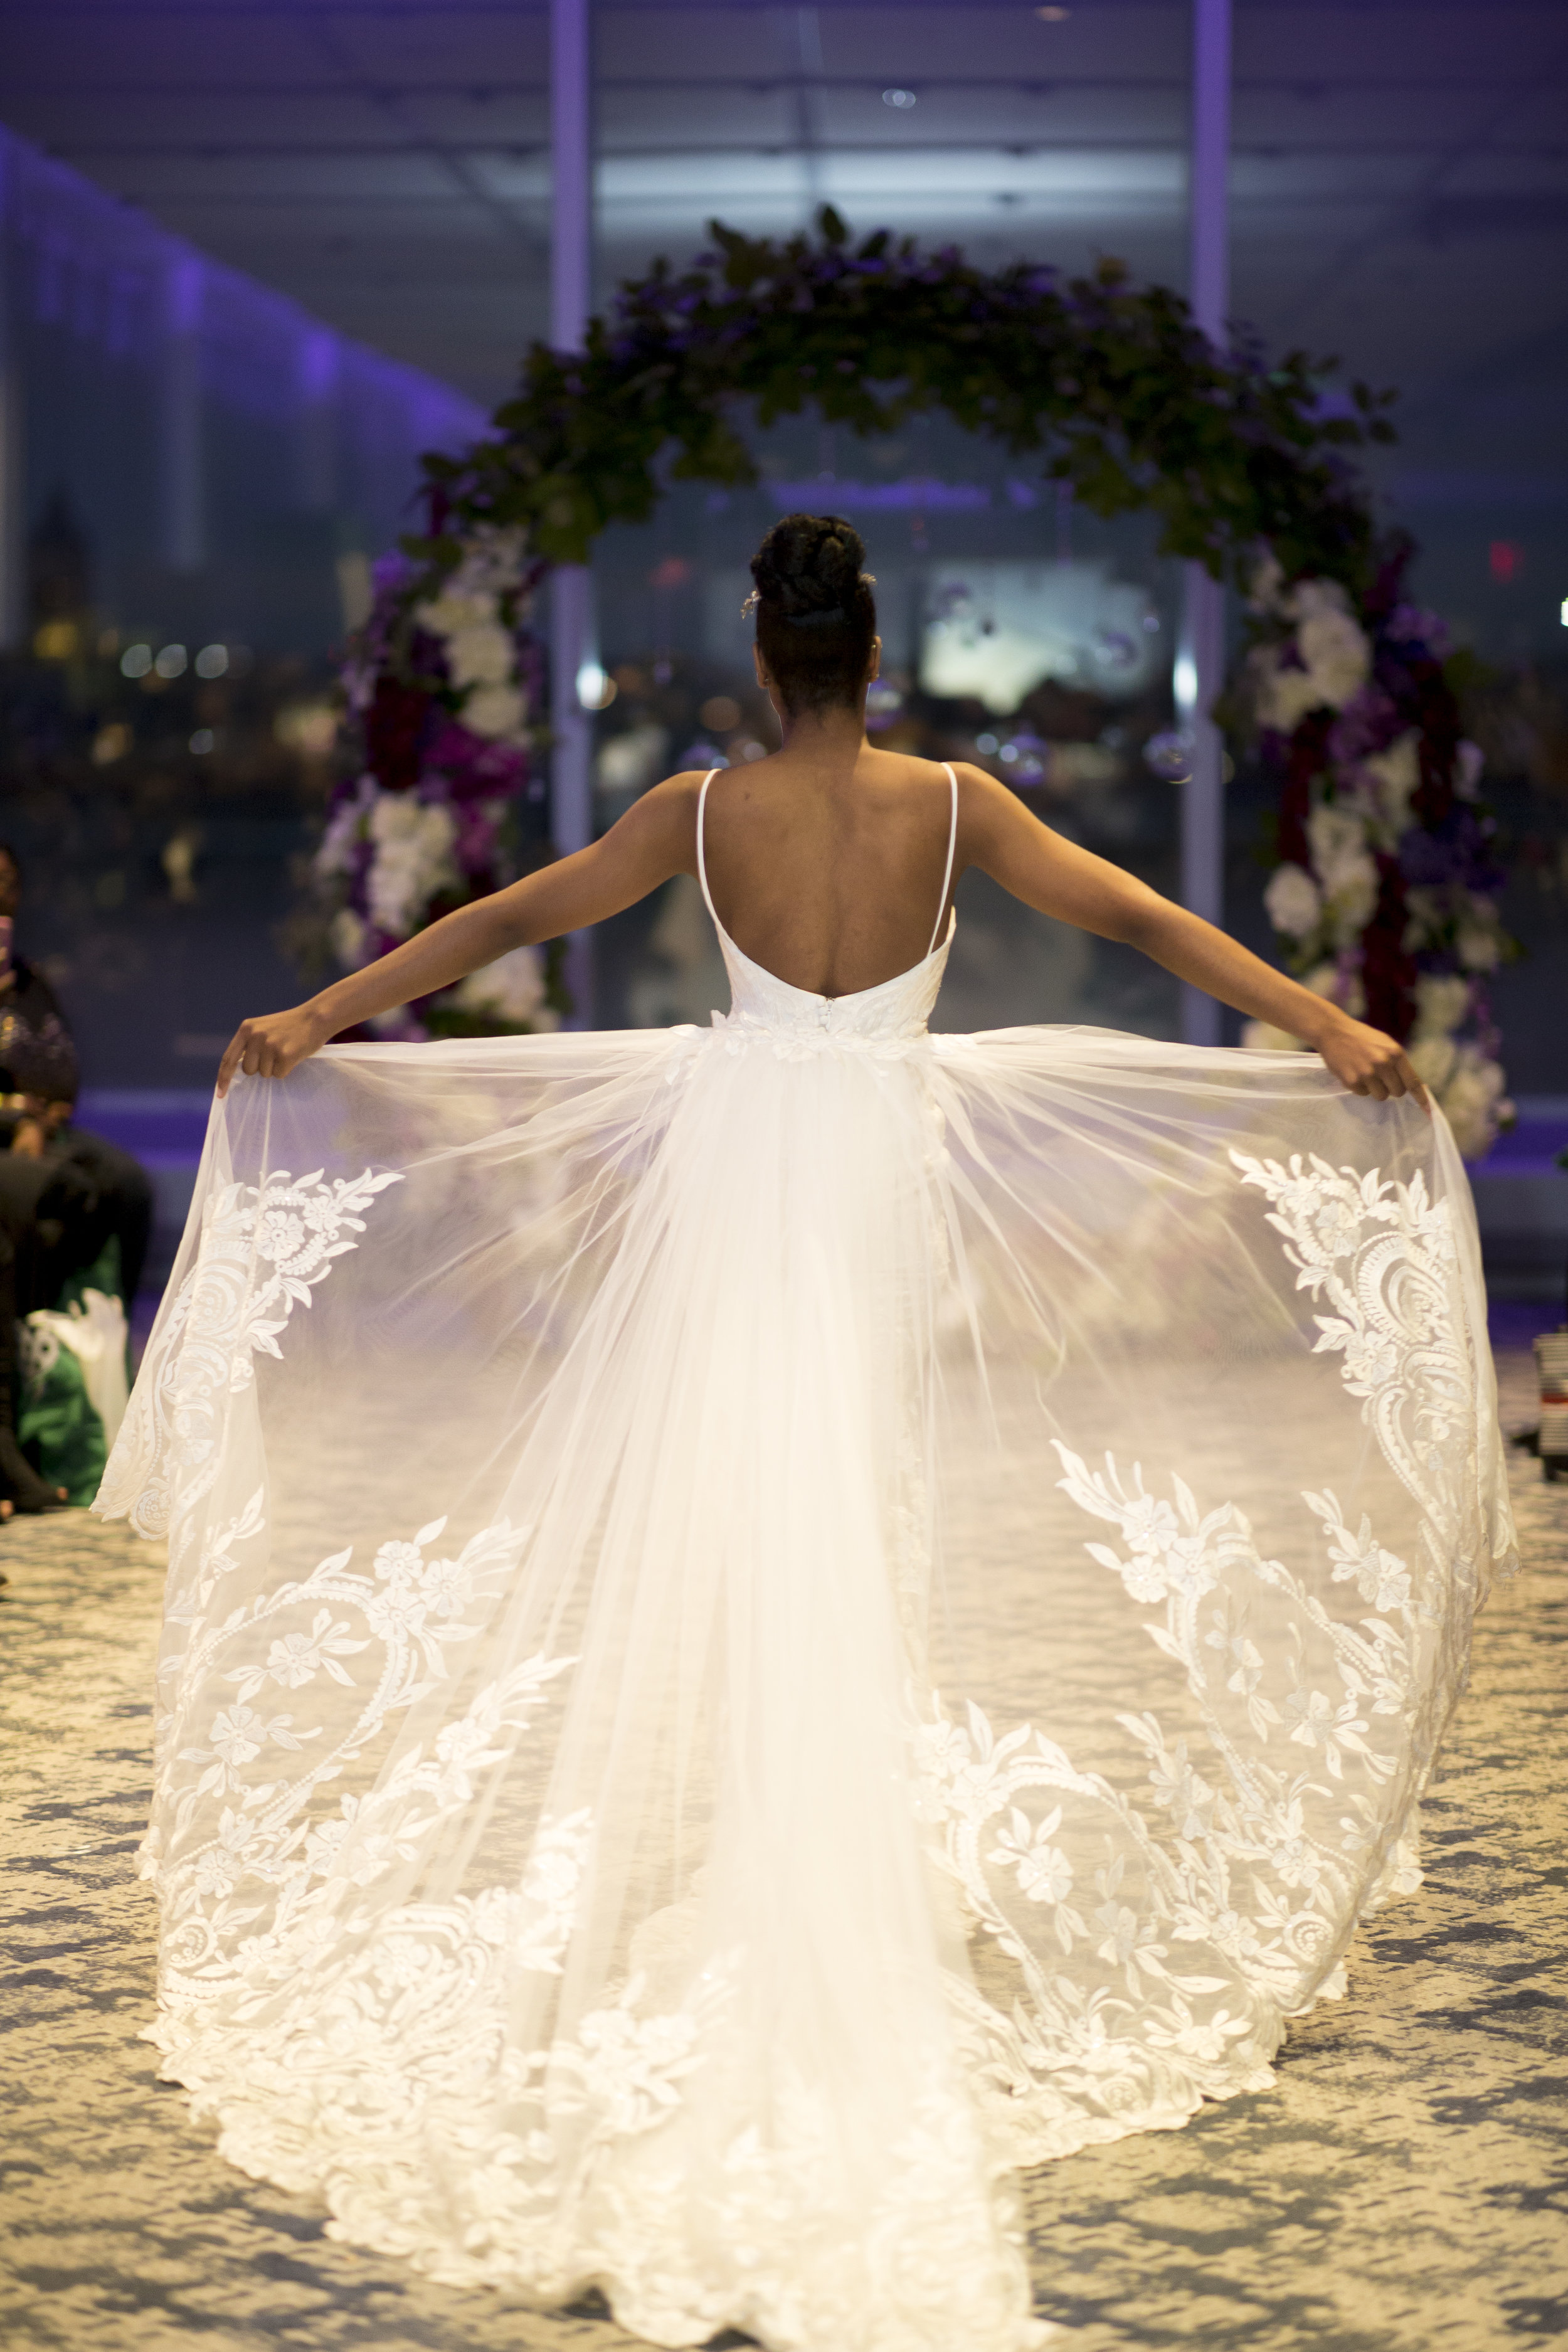 wedding-gown-andrew-roby-events